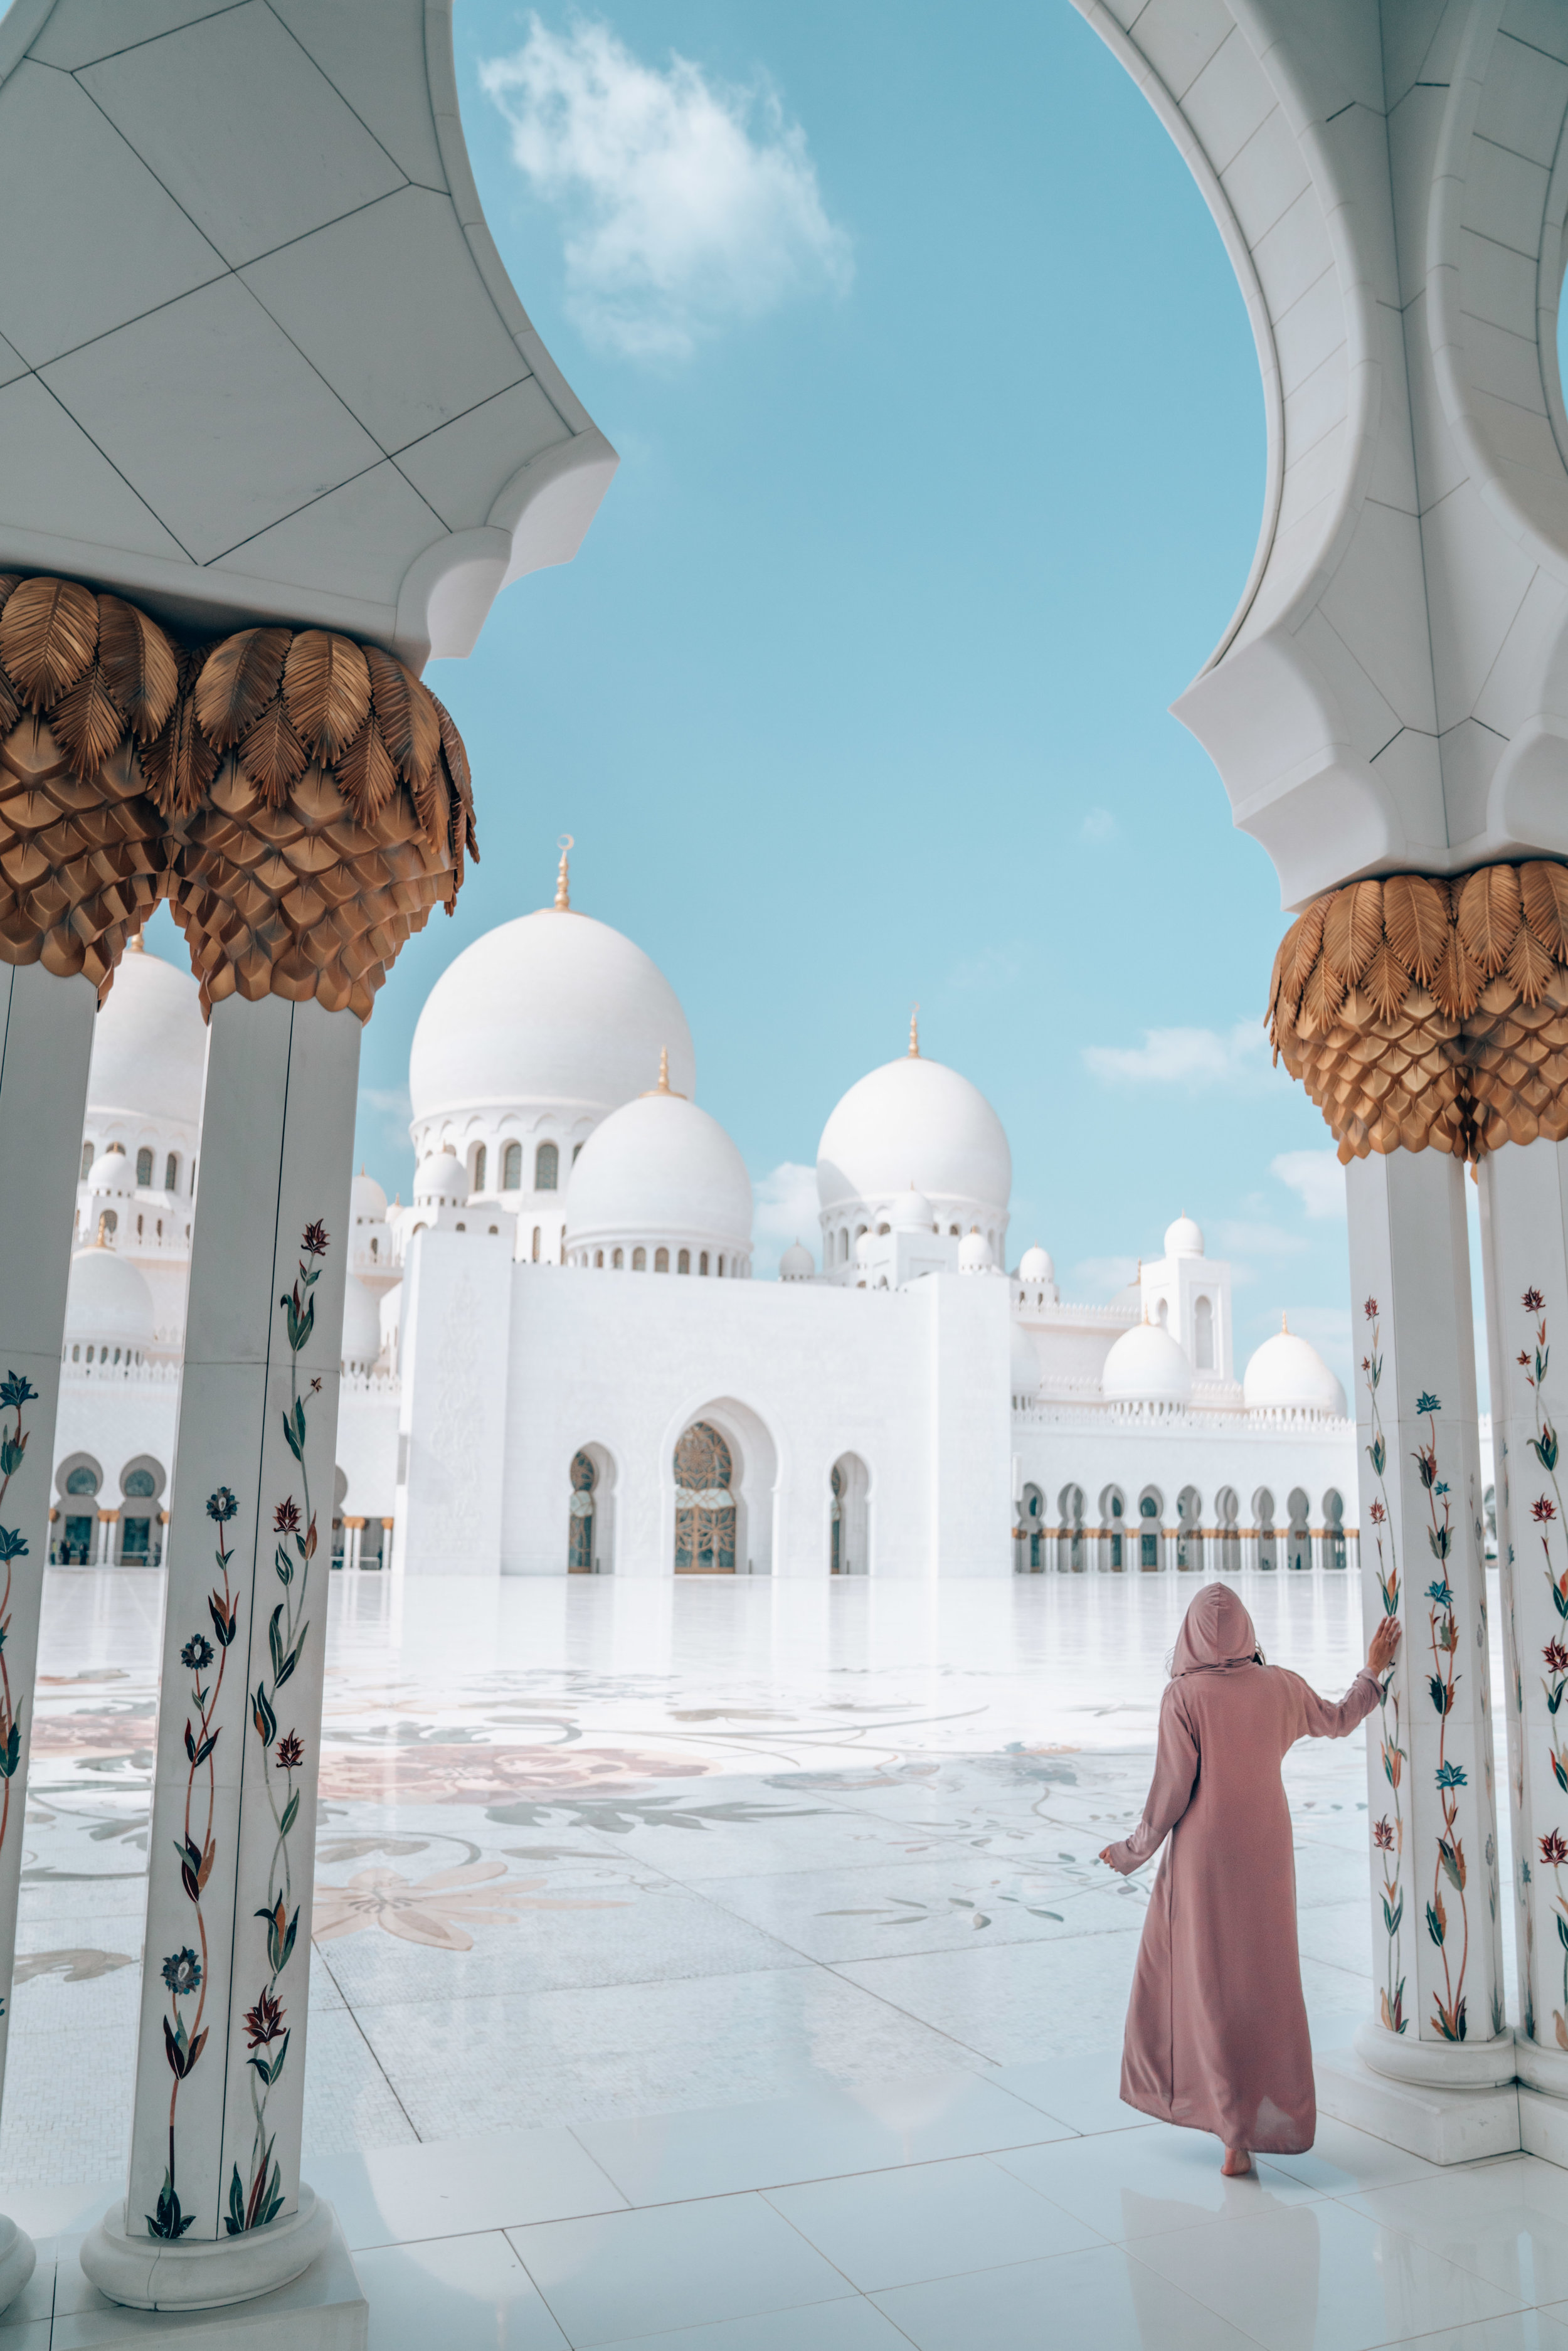 10 Things You Need to Know Before Visiting the Sheikh Zayed Mosque in Abu Dhabi, UAE